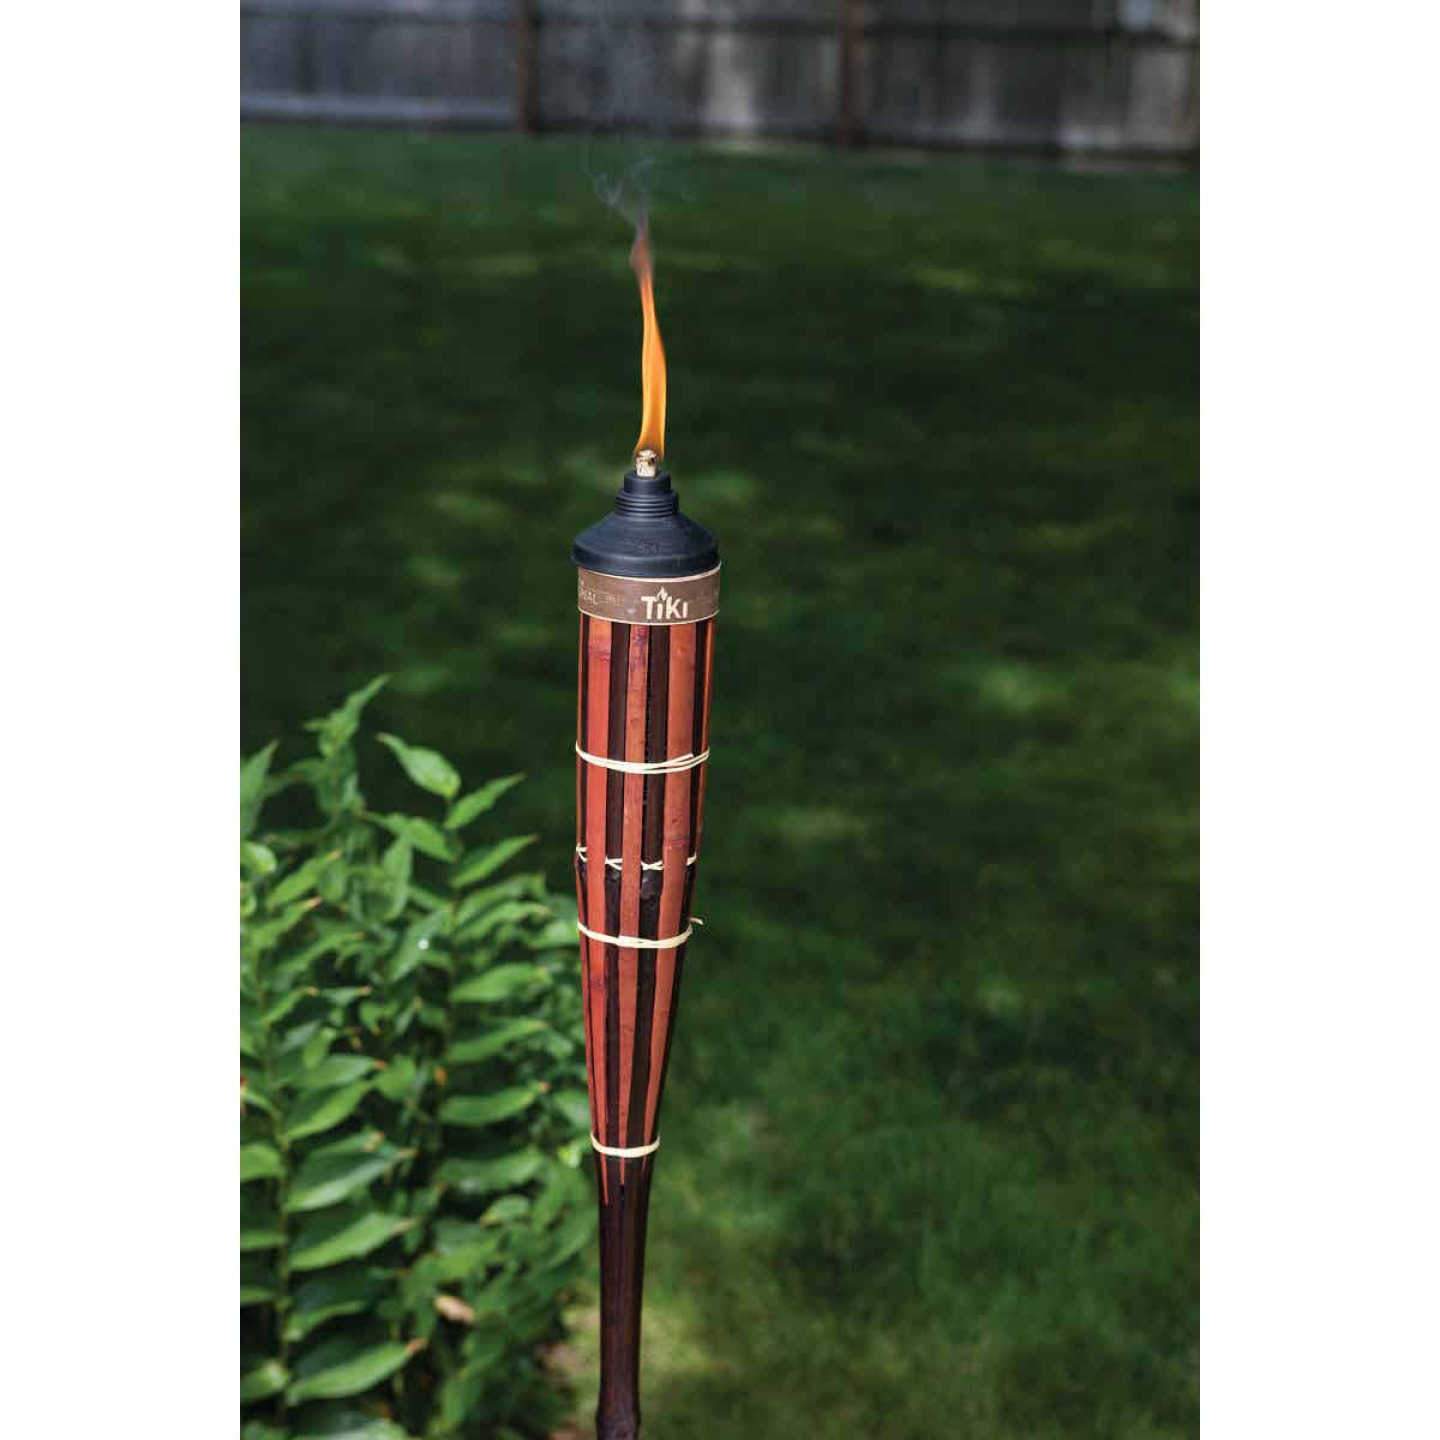 Tiki Royal Polynesian 5 Ft. Brown Bamboo Patio Torch Image 2